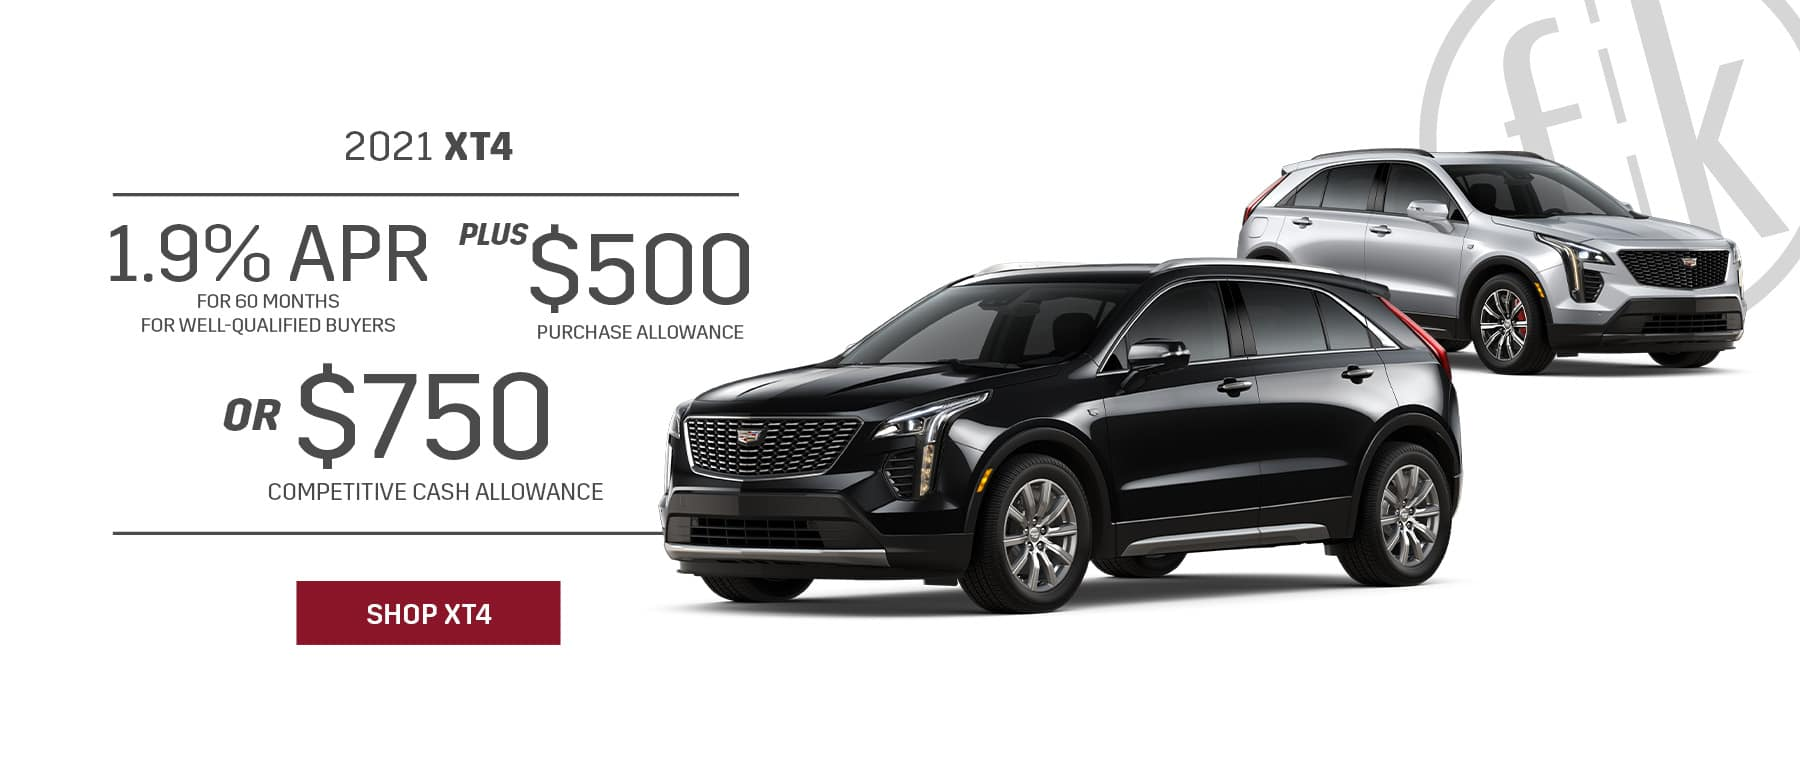 2021 XT4 1.9% for 60 mos PLUS $500 Purchase Allowance OR $750 Competitive Cash Allowance